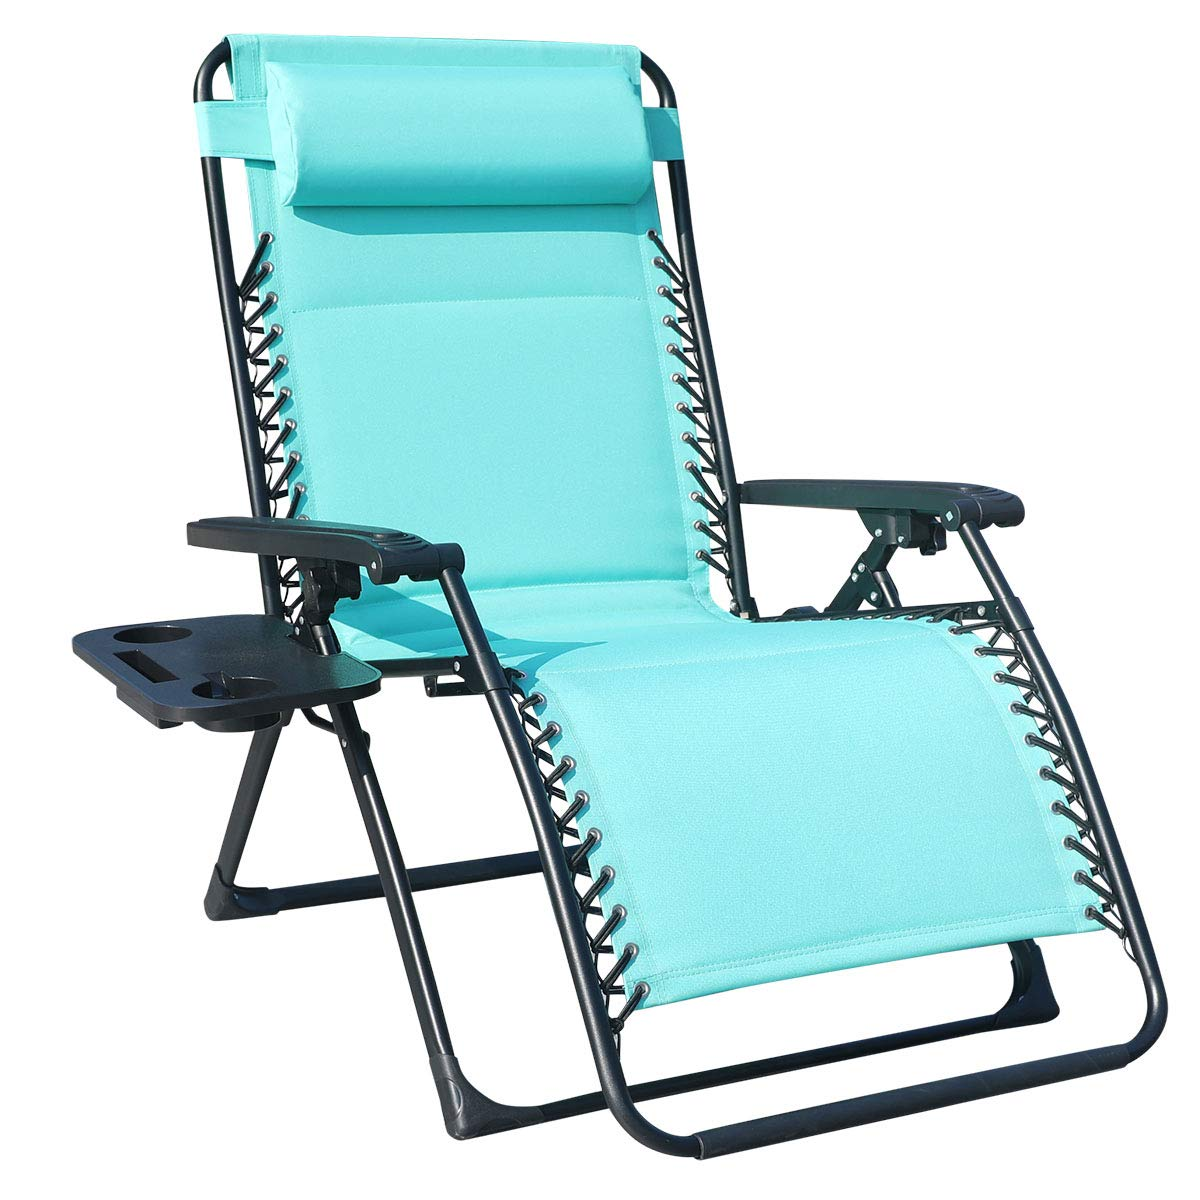 GOLDSUN Oversize XL Padded Zero Gravity Lounge Patio Chair Adjustable Reclining Lounger with Utility Cup Tray Support 350 LBS-Blue by GOLDSUN